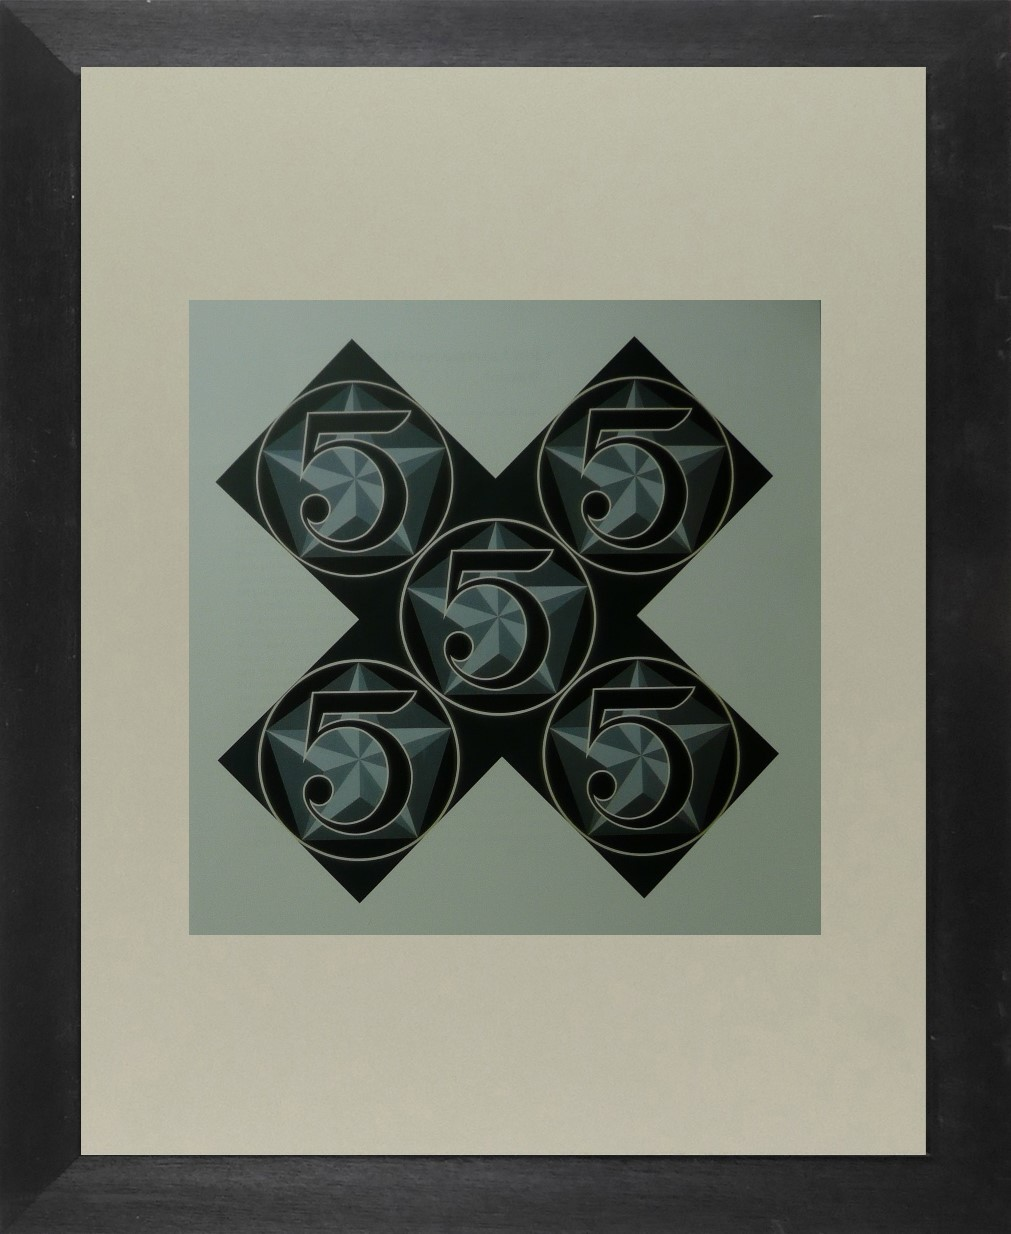 The Five Stars - Robert Indiana - Framed Picture 11 x 14